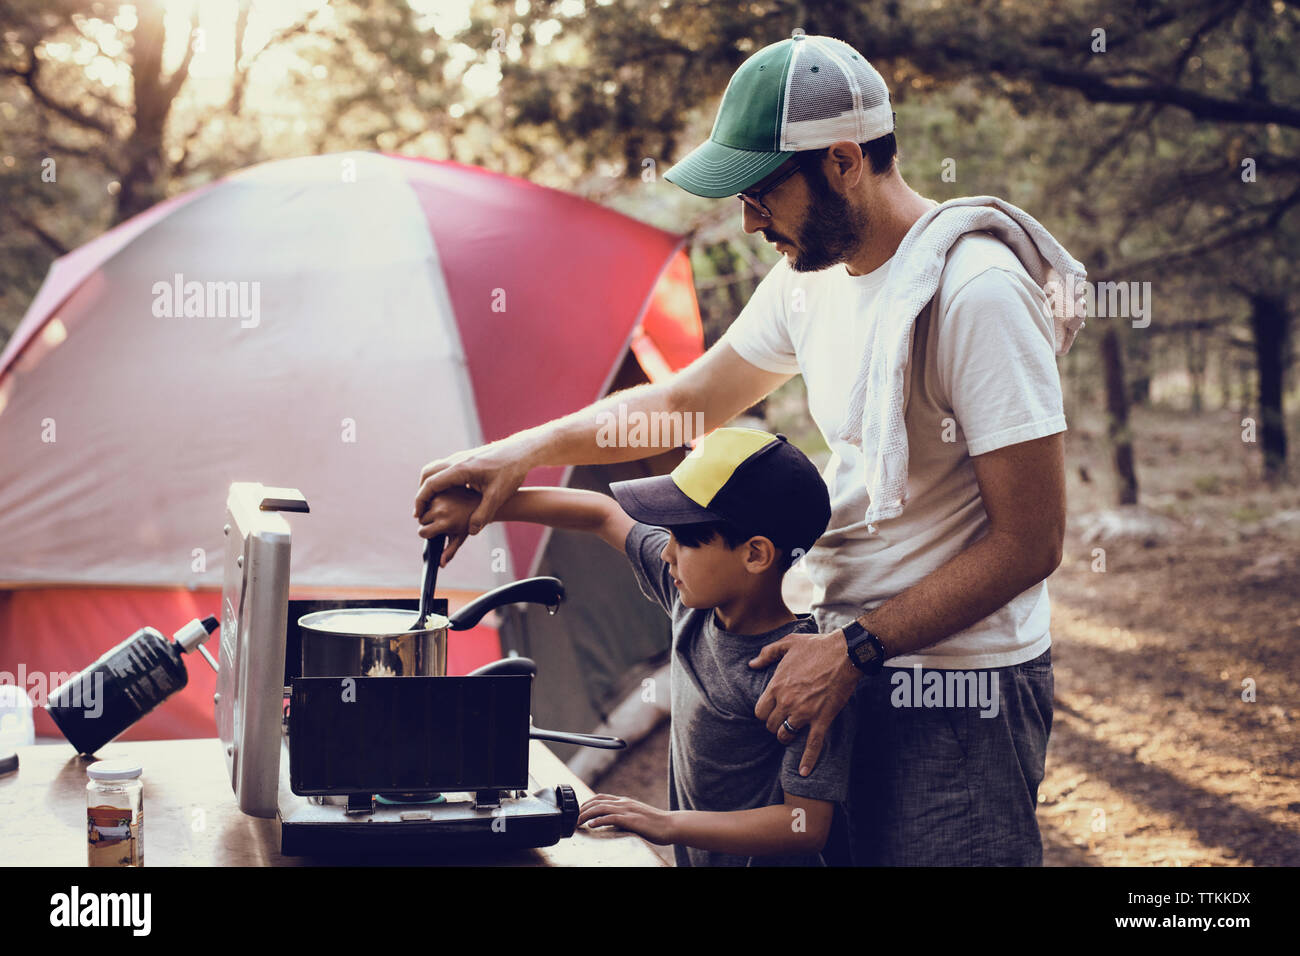 Father and son preparing food on camping stove in forest - Stock Image